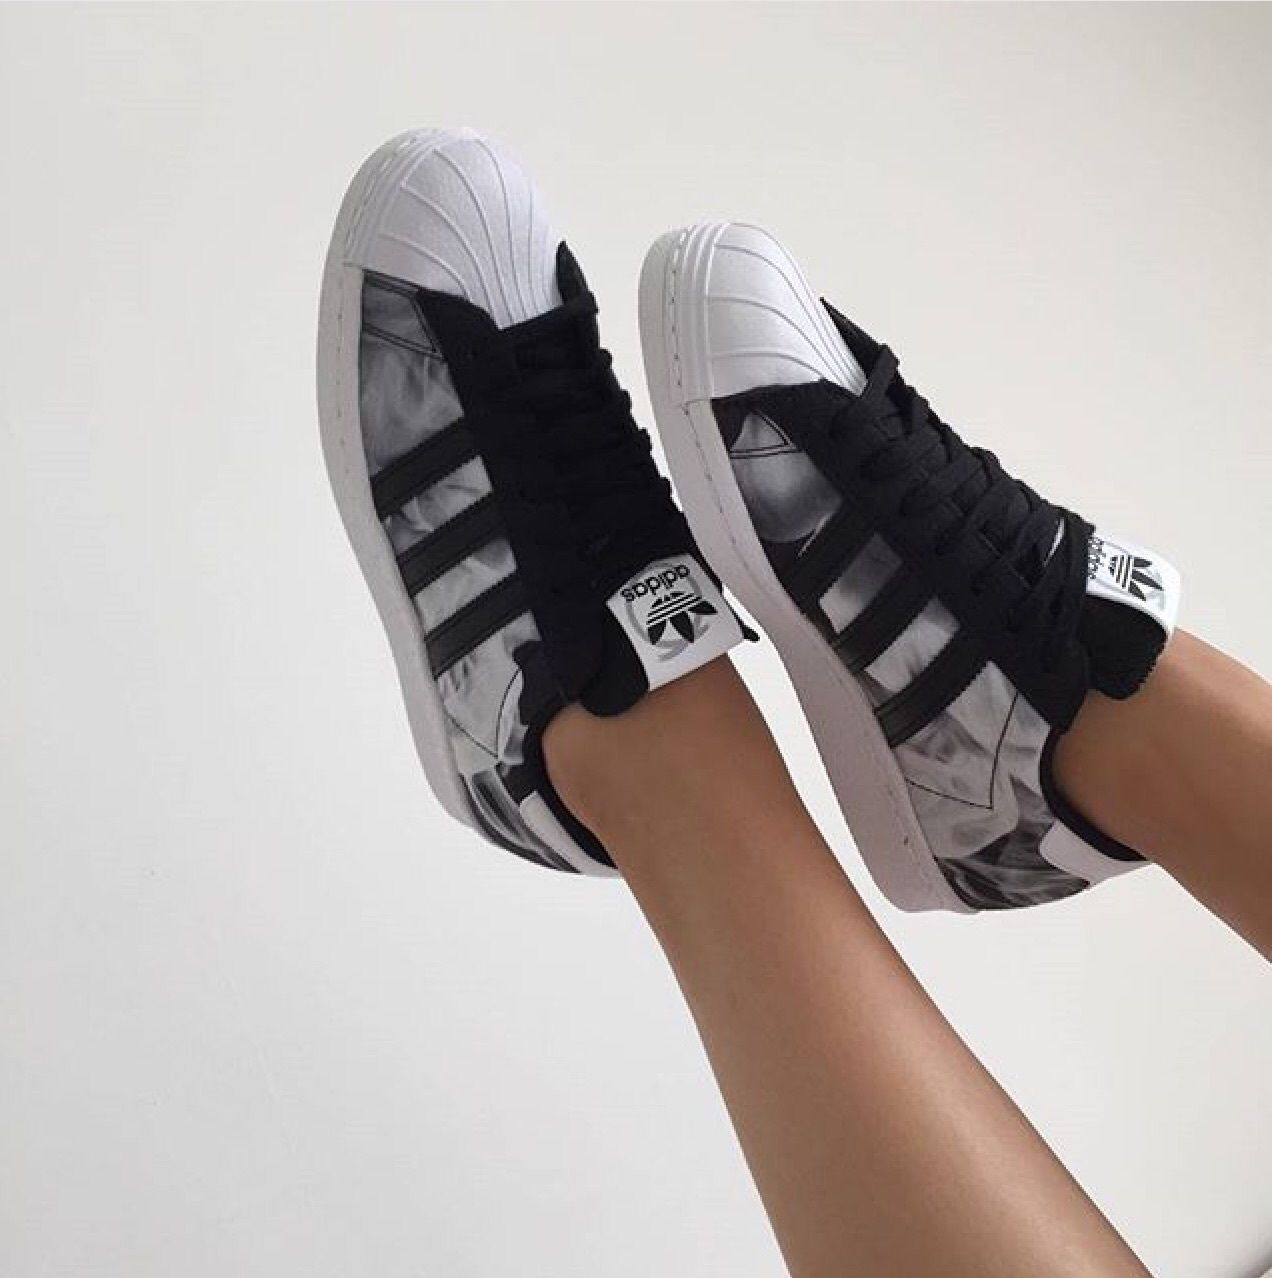 on We Heart It Adidas shoes women, Adidas shoes, Sneakers